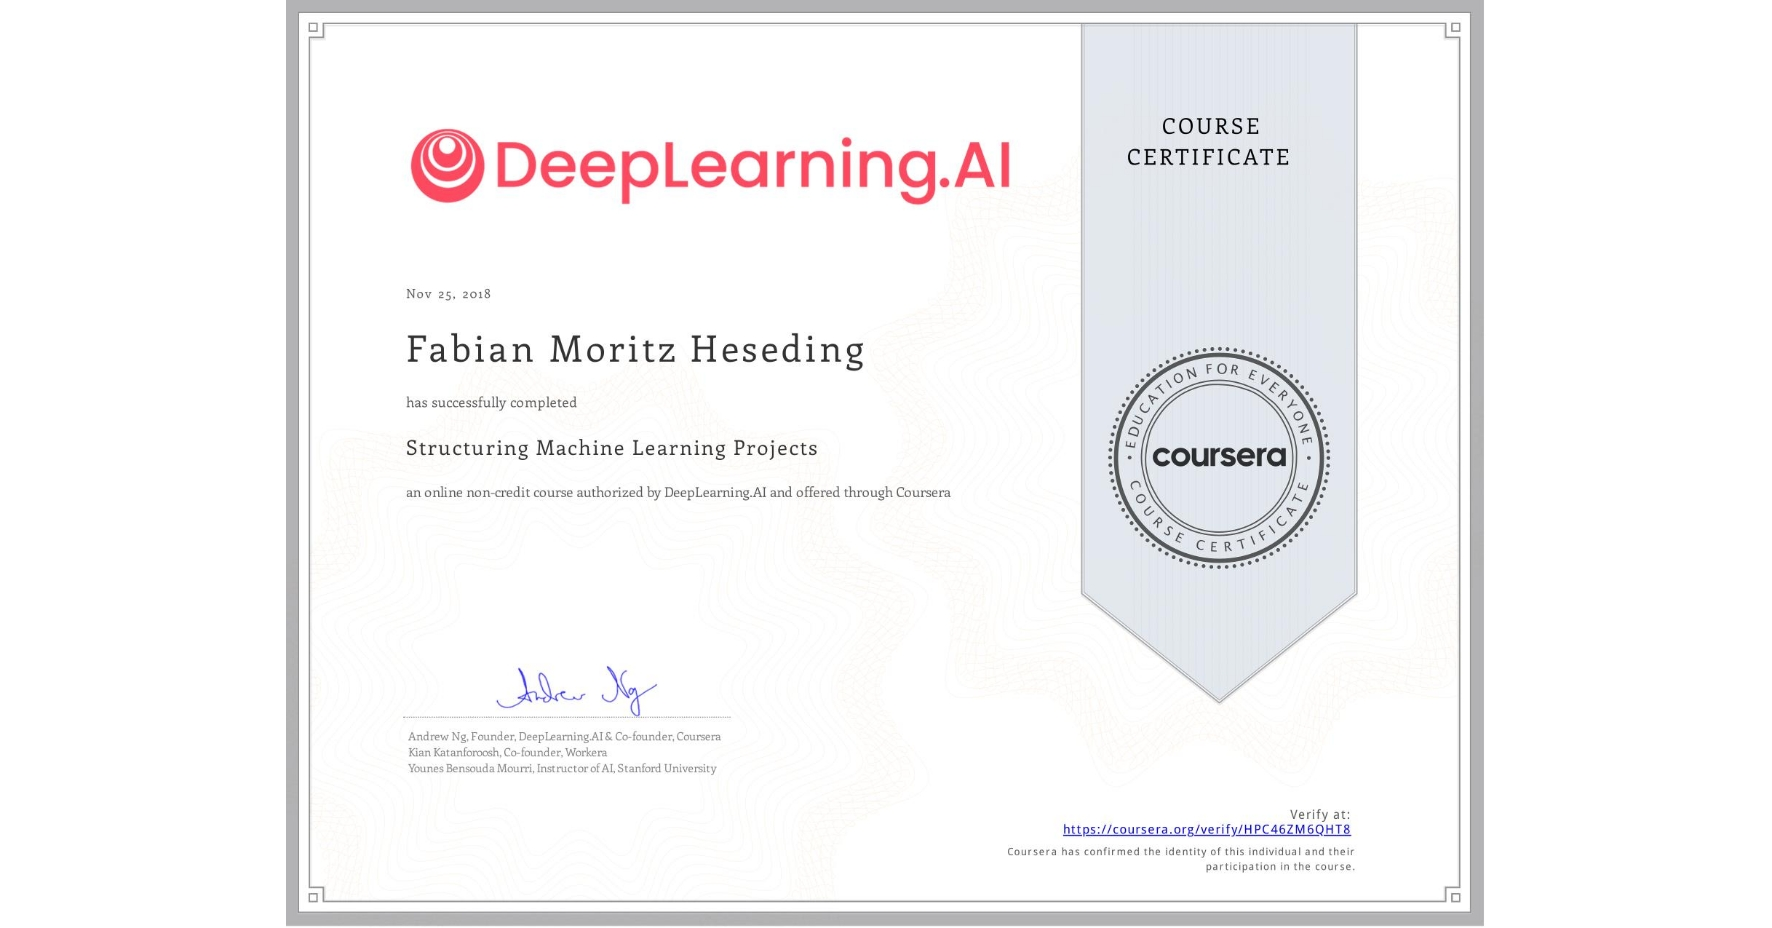 View certificate for Fabian Moritz Heseding, Structuring Machine Learning Projects, an online non-credit course authorized by DeepLearning.AI and offered through Coursera